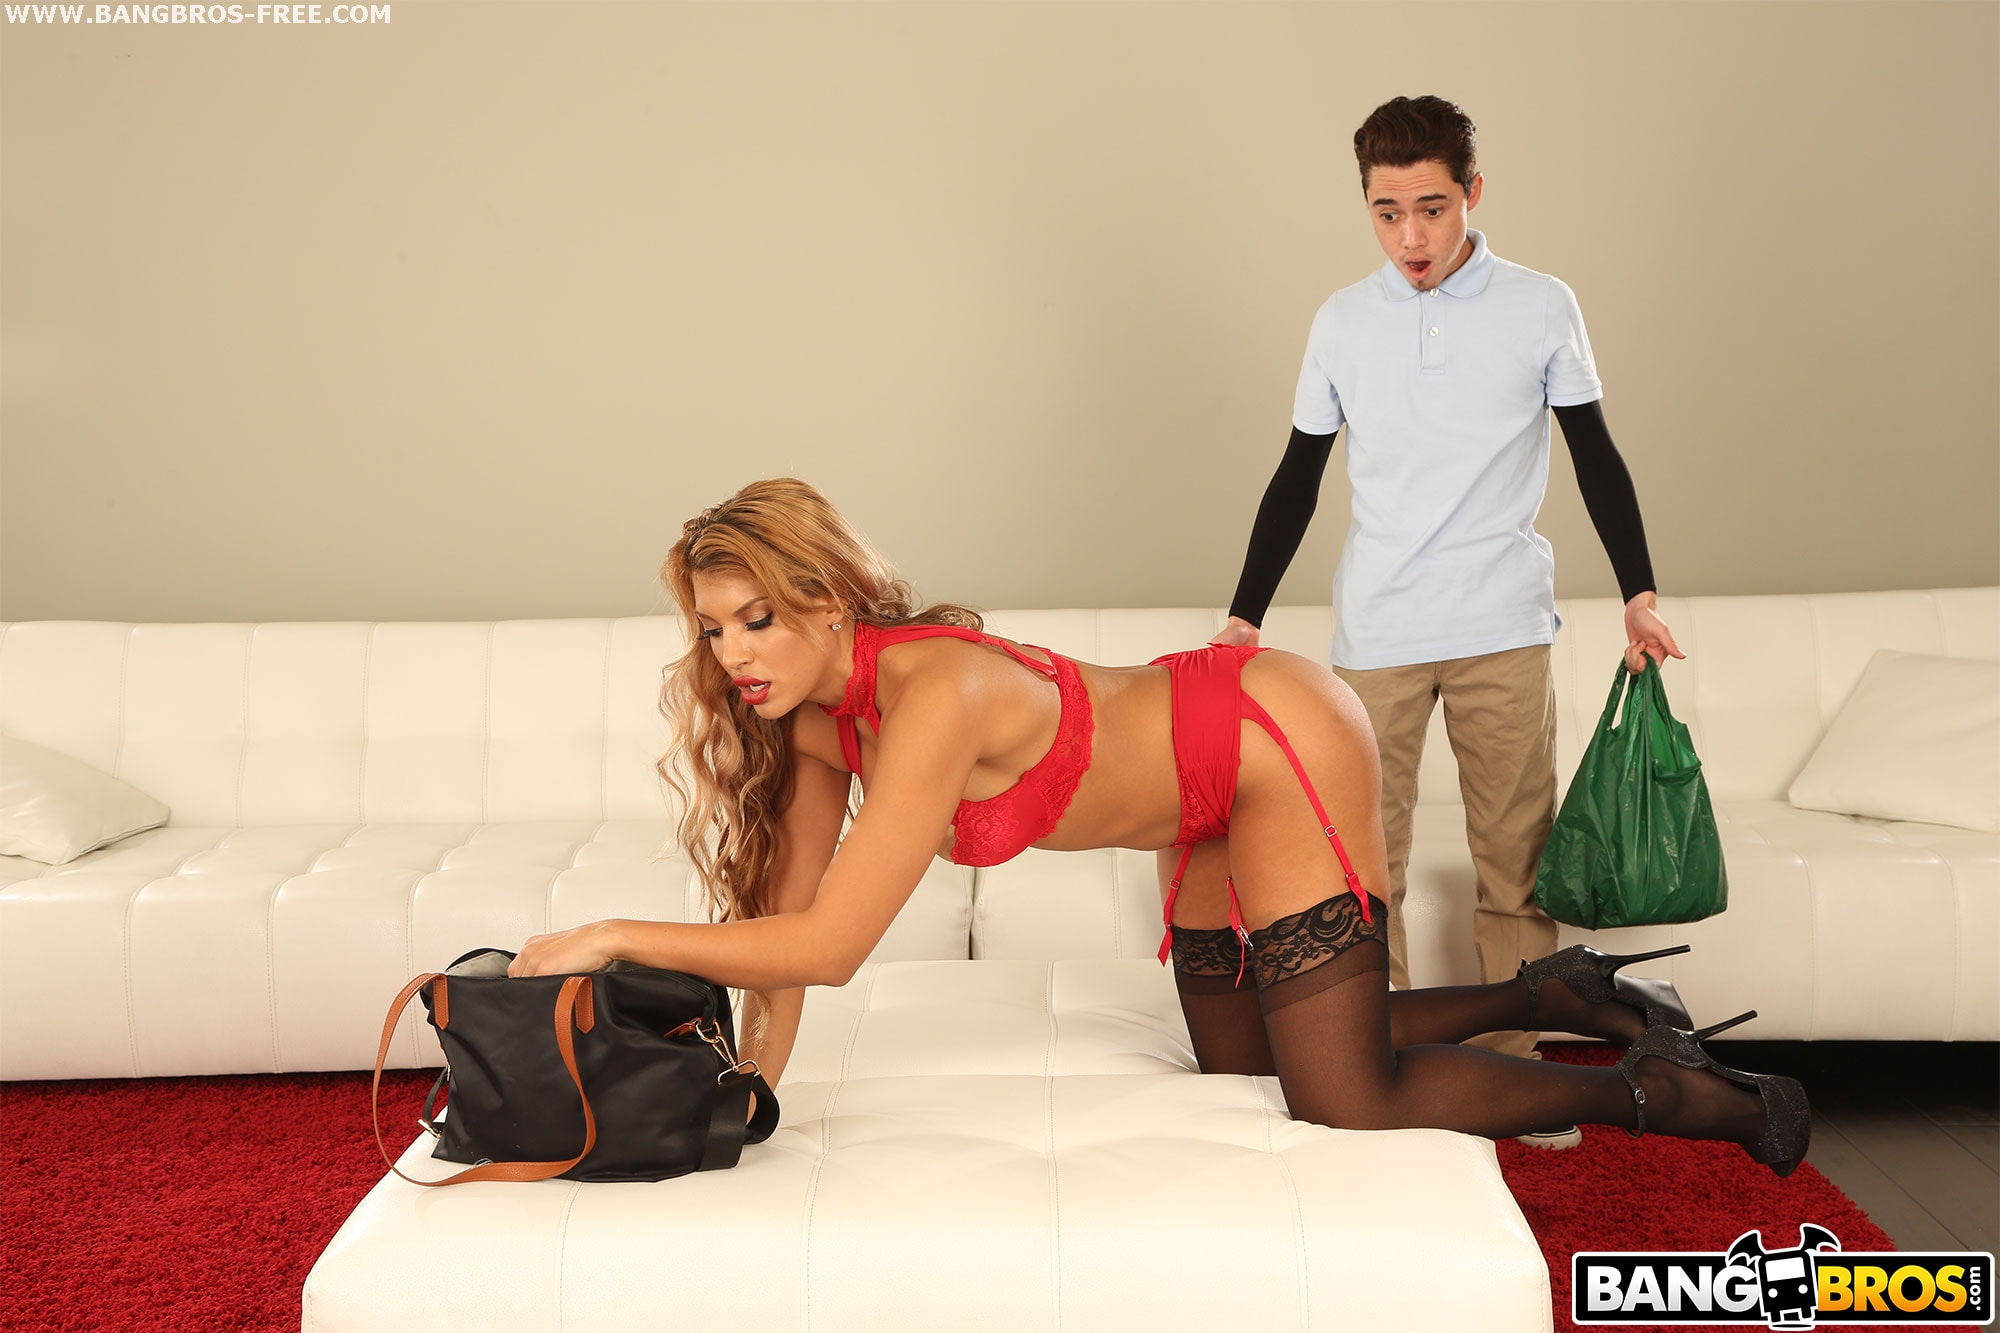 Bangbros 'Hot Milf Fucked Delivery Guy' starring Mercedes Carrera (photo 81)